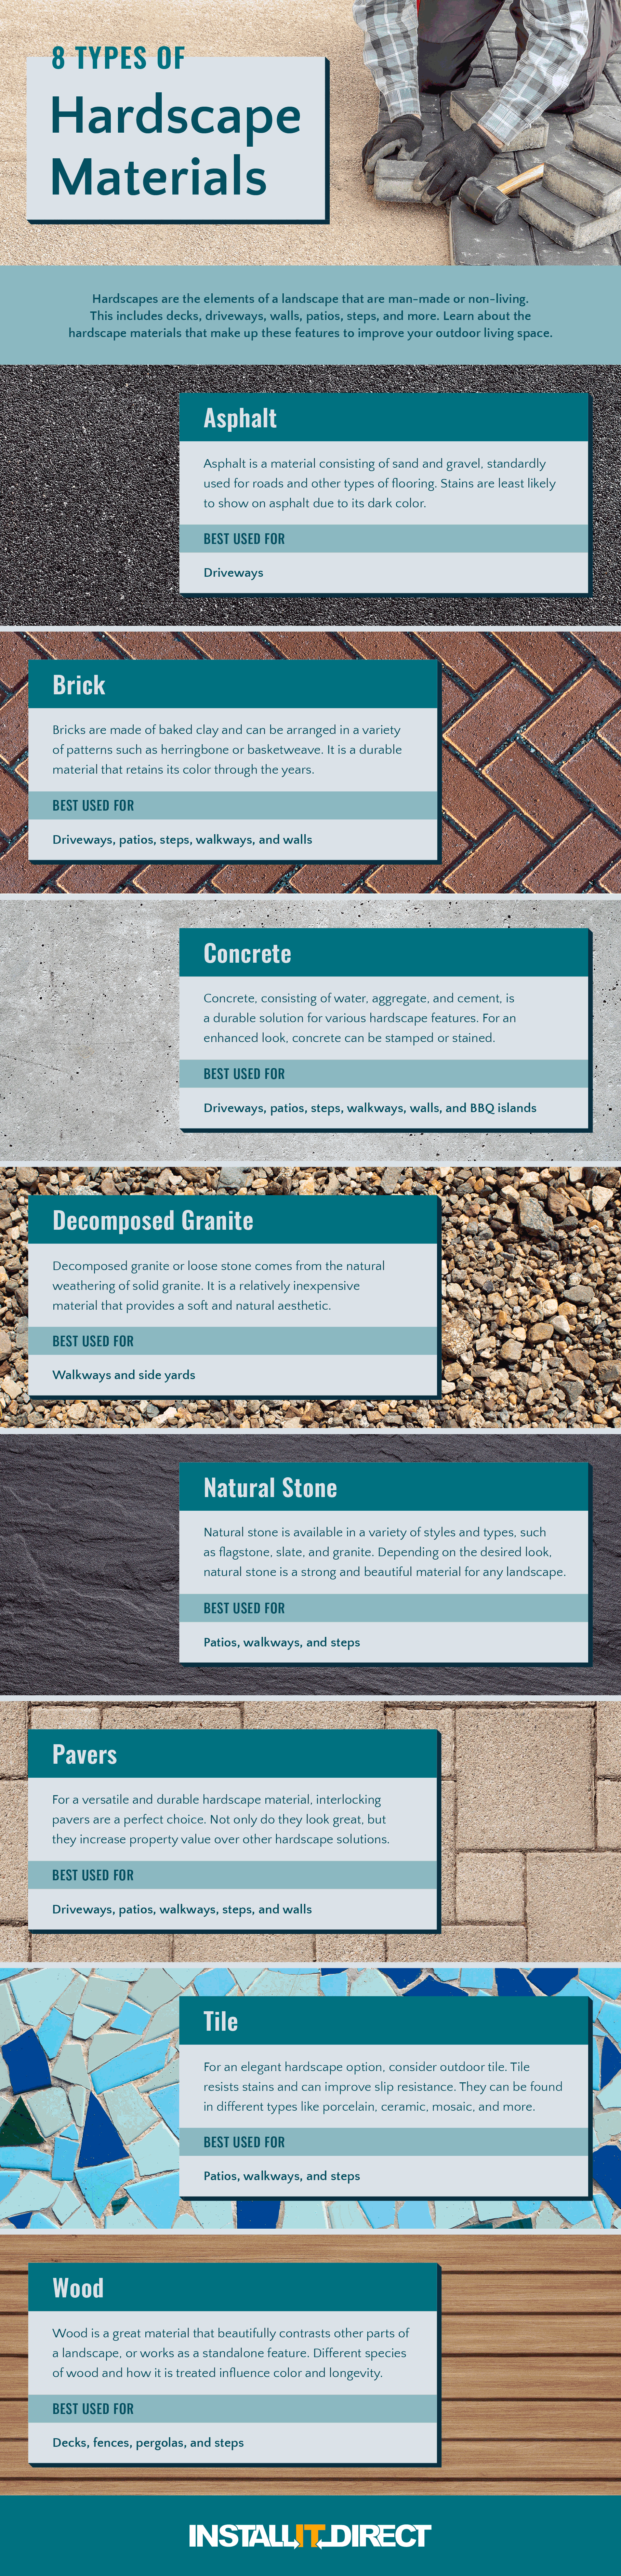 Hardscape Materials for your outdoor living space